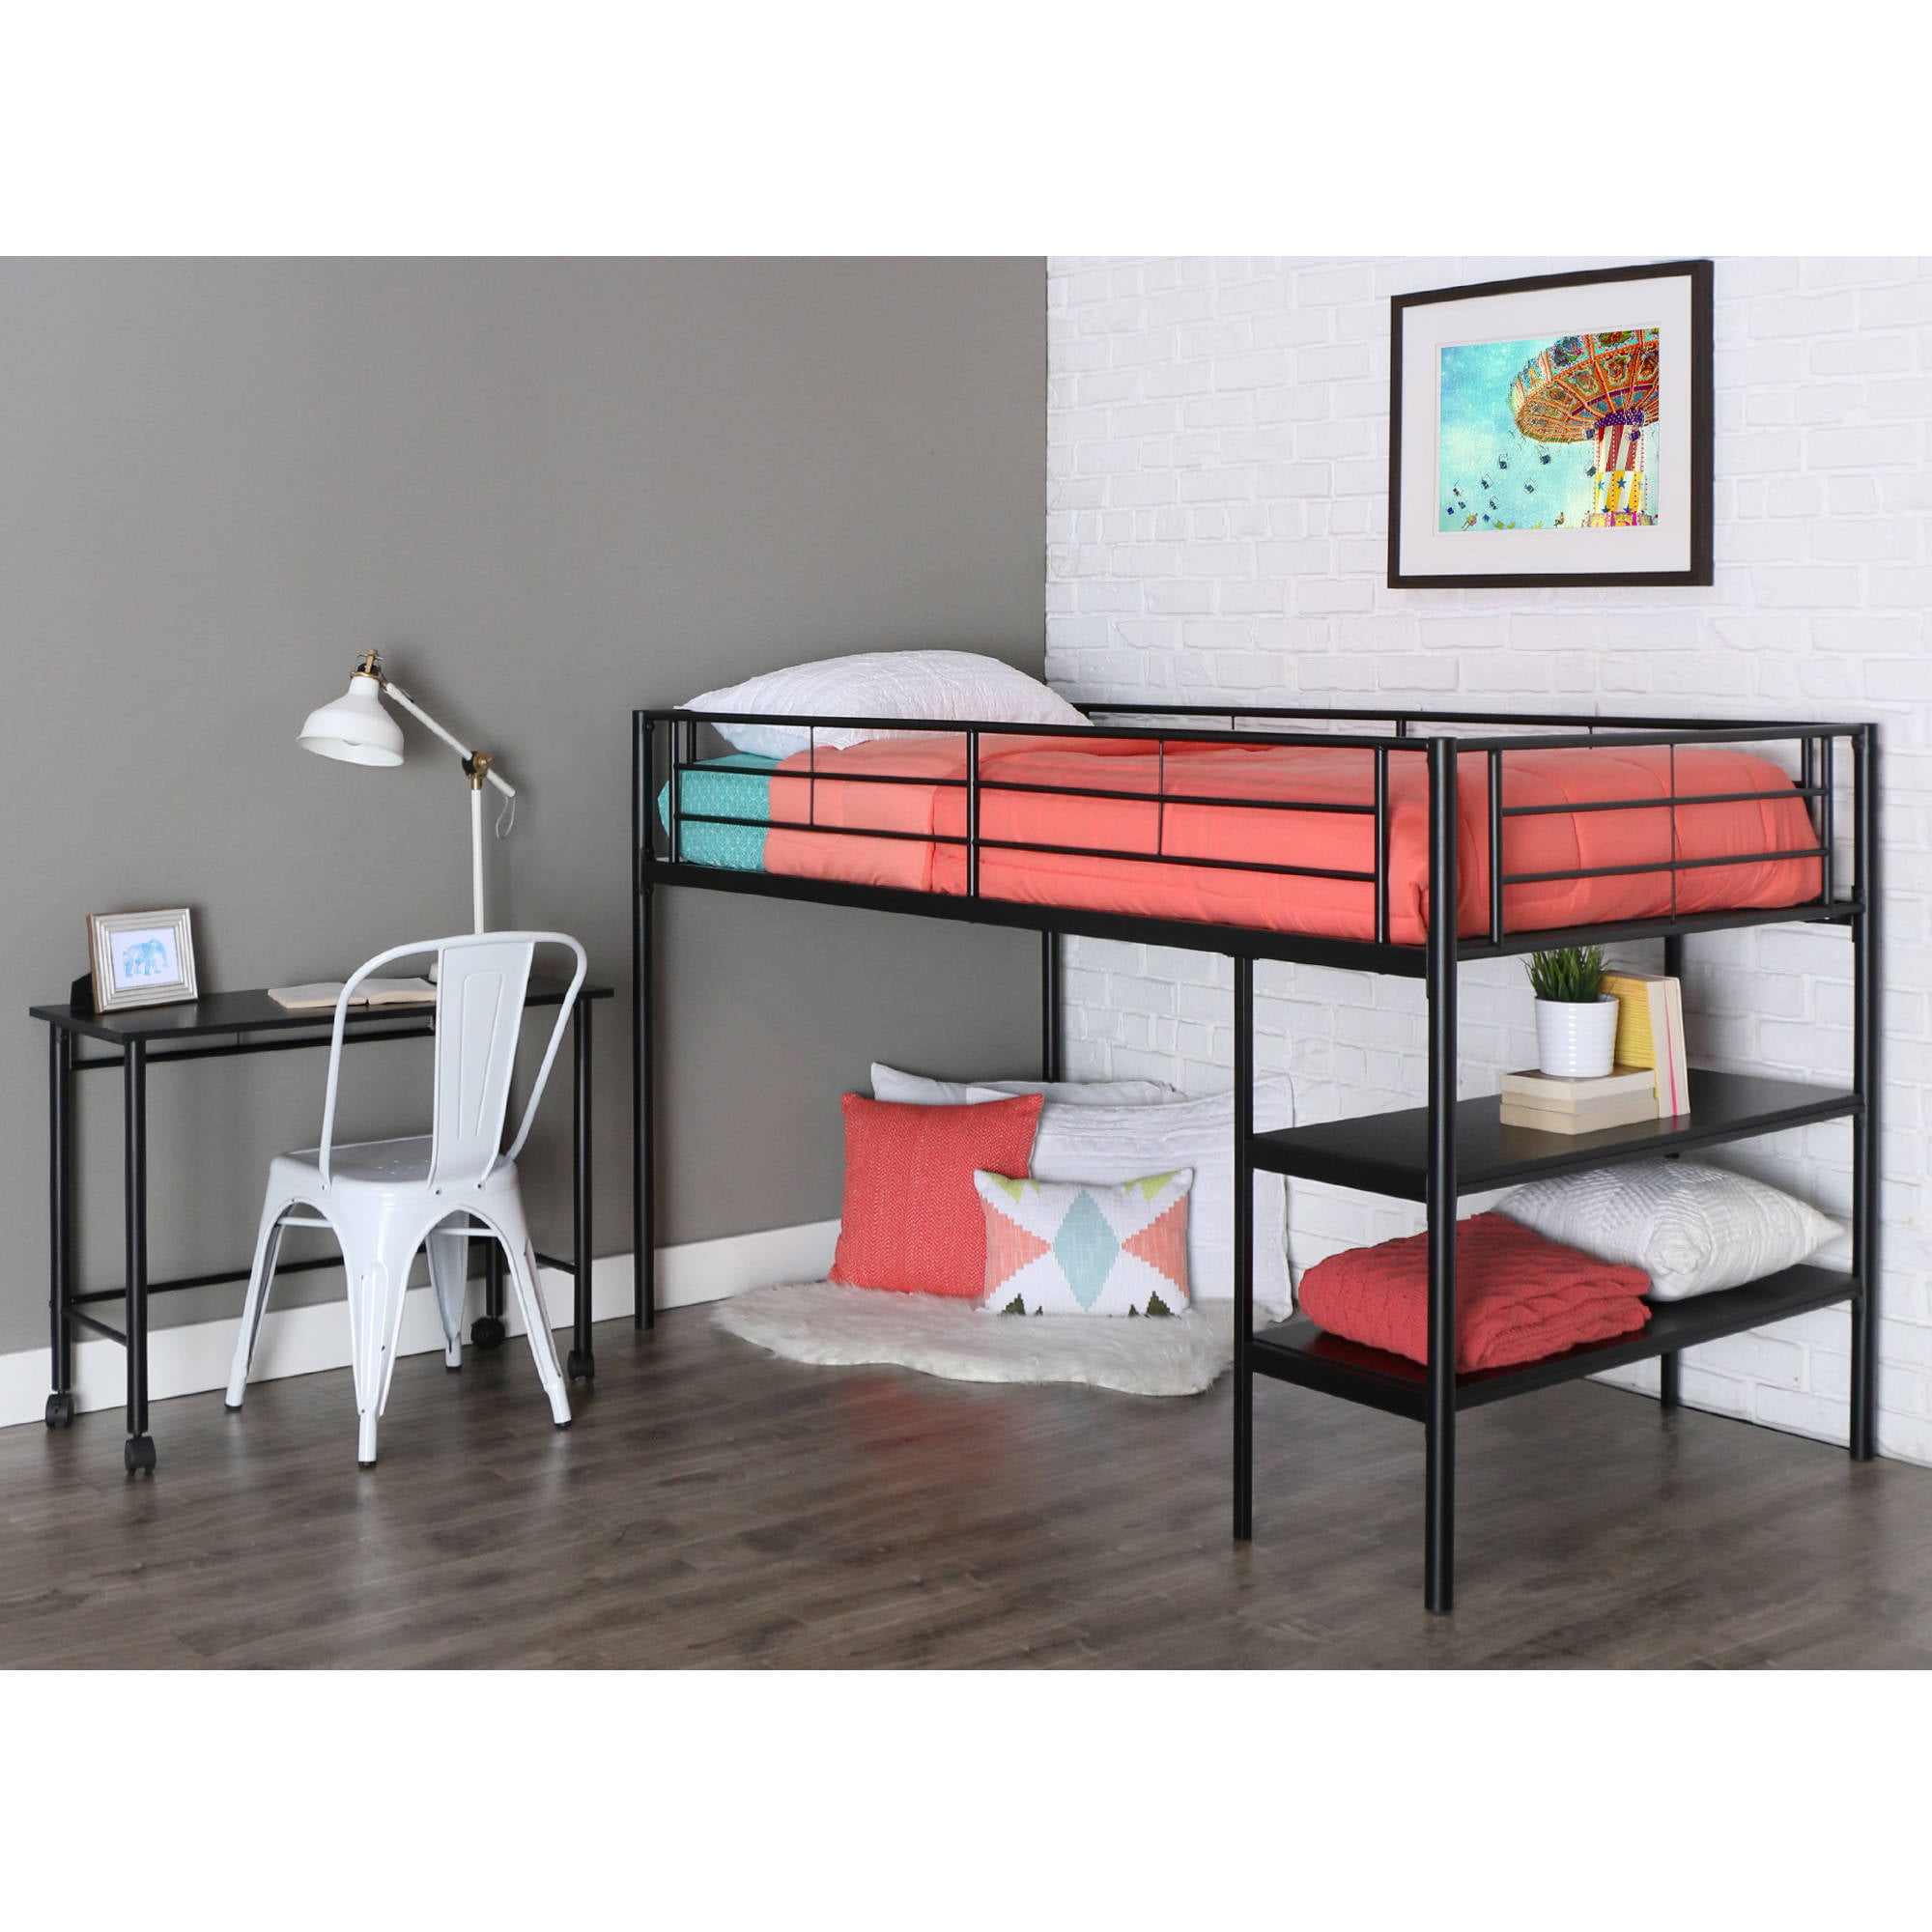 desk bed loft raindance ikea of with designs bunk choosing image beds